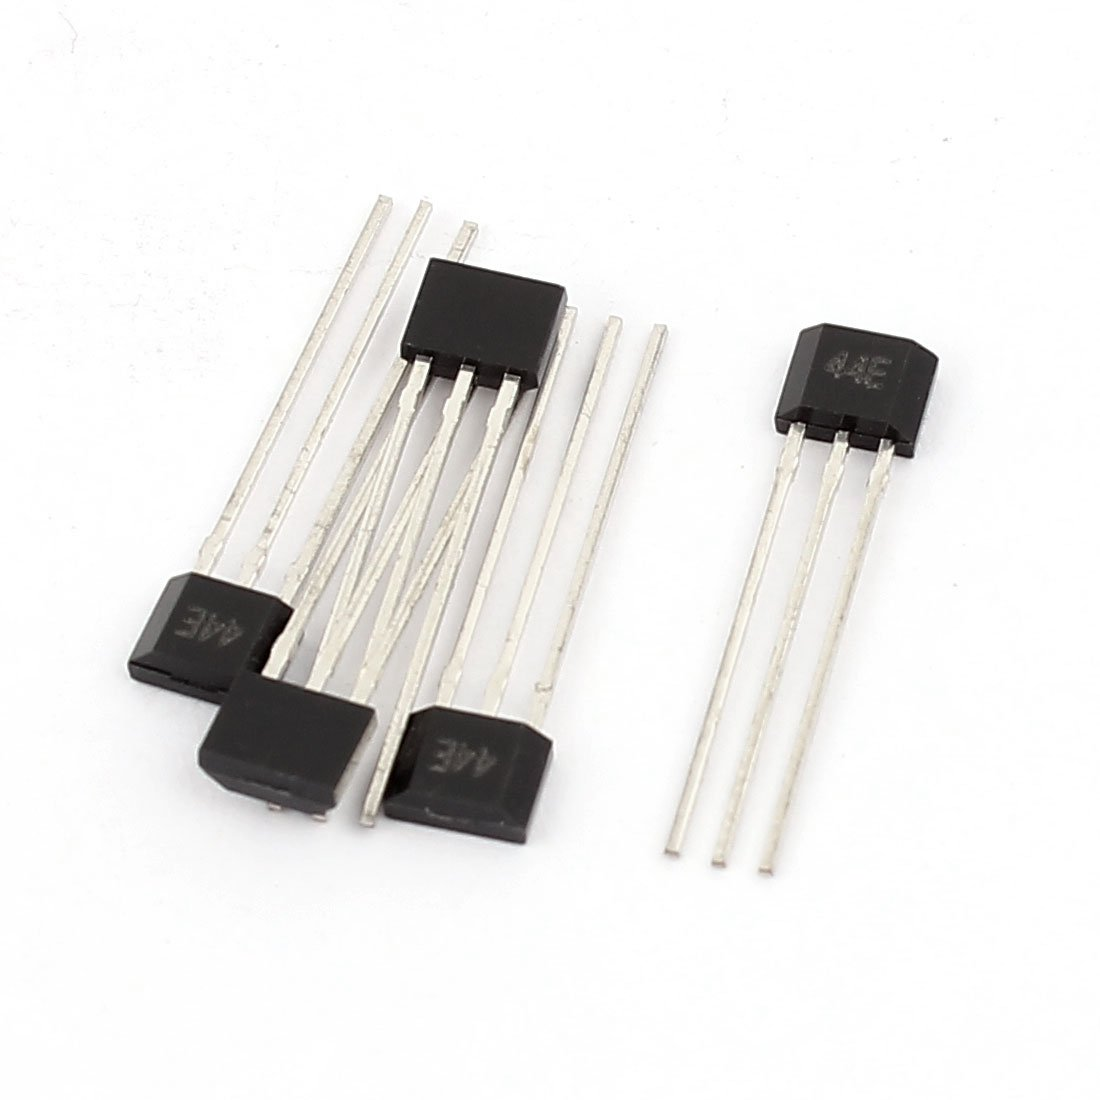 Aexit 4 Pcs Shock & Vibration Control 44E 4.5-24V Unipolar Sensitive Hall Effect Sensor Vibration Sensors Magnetic Detector